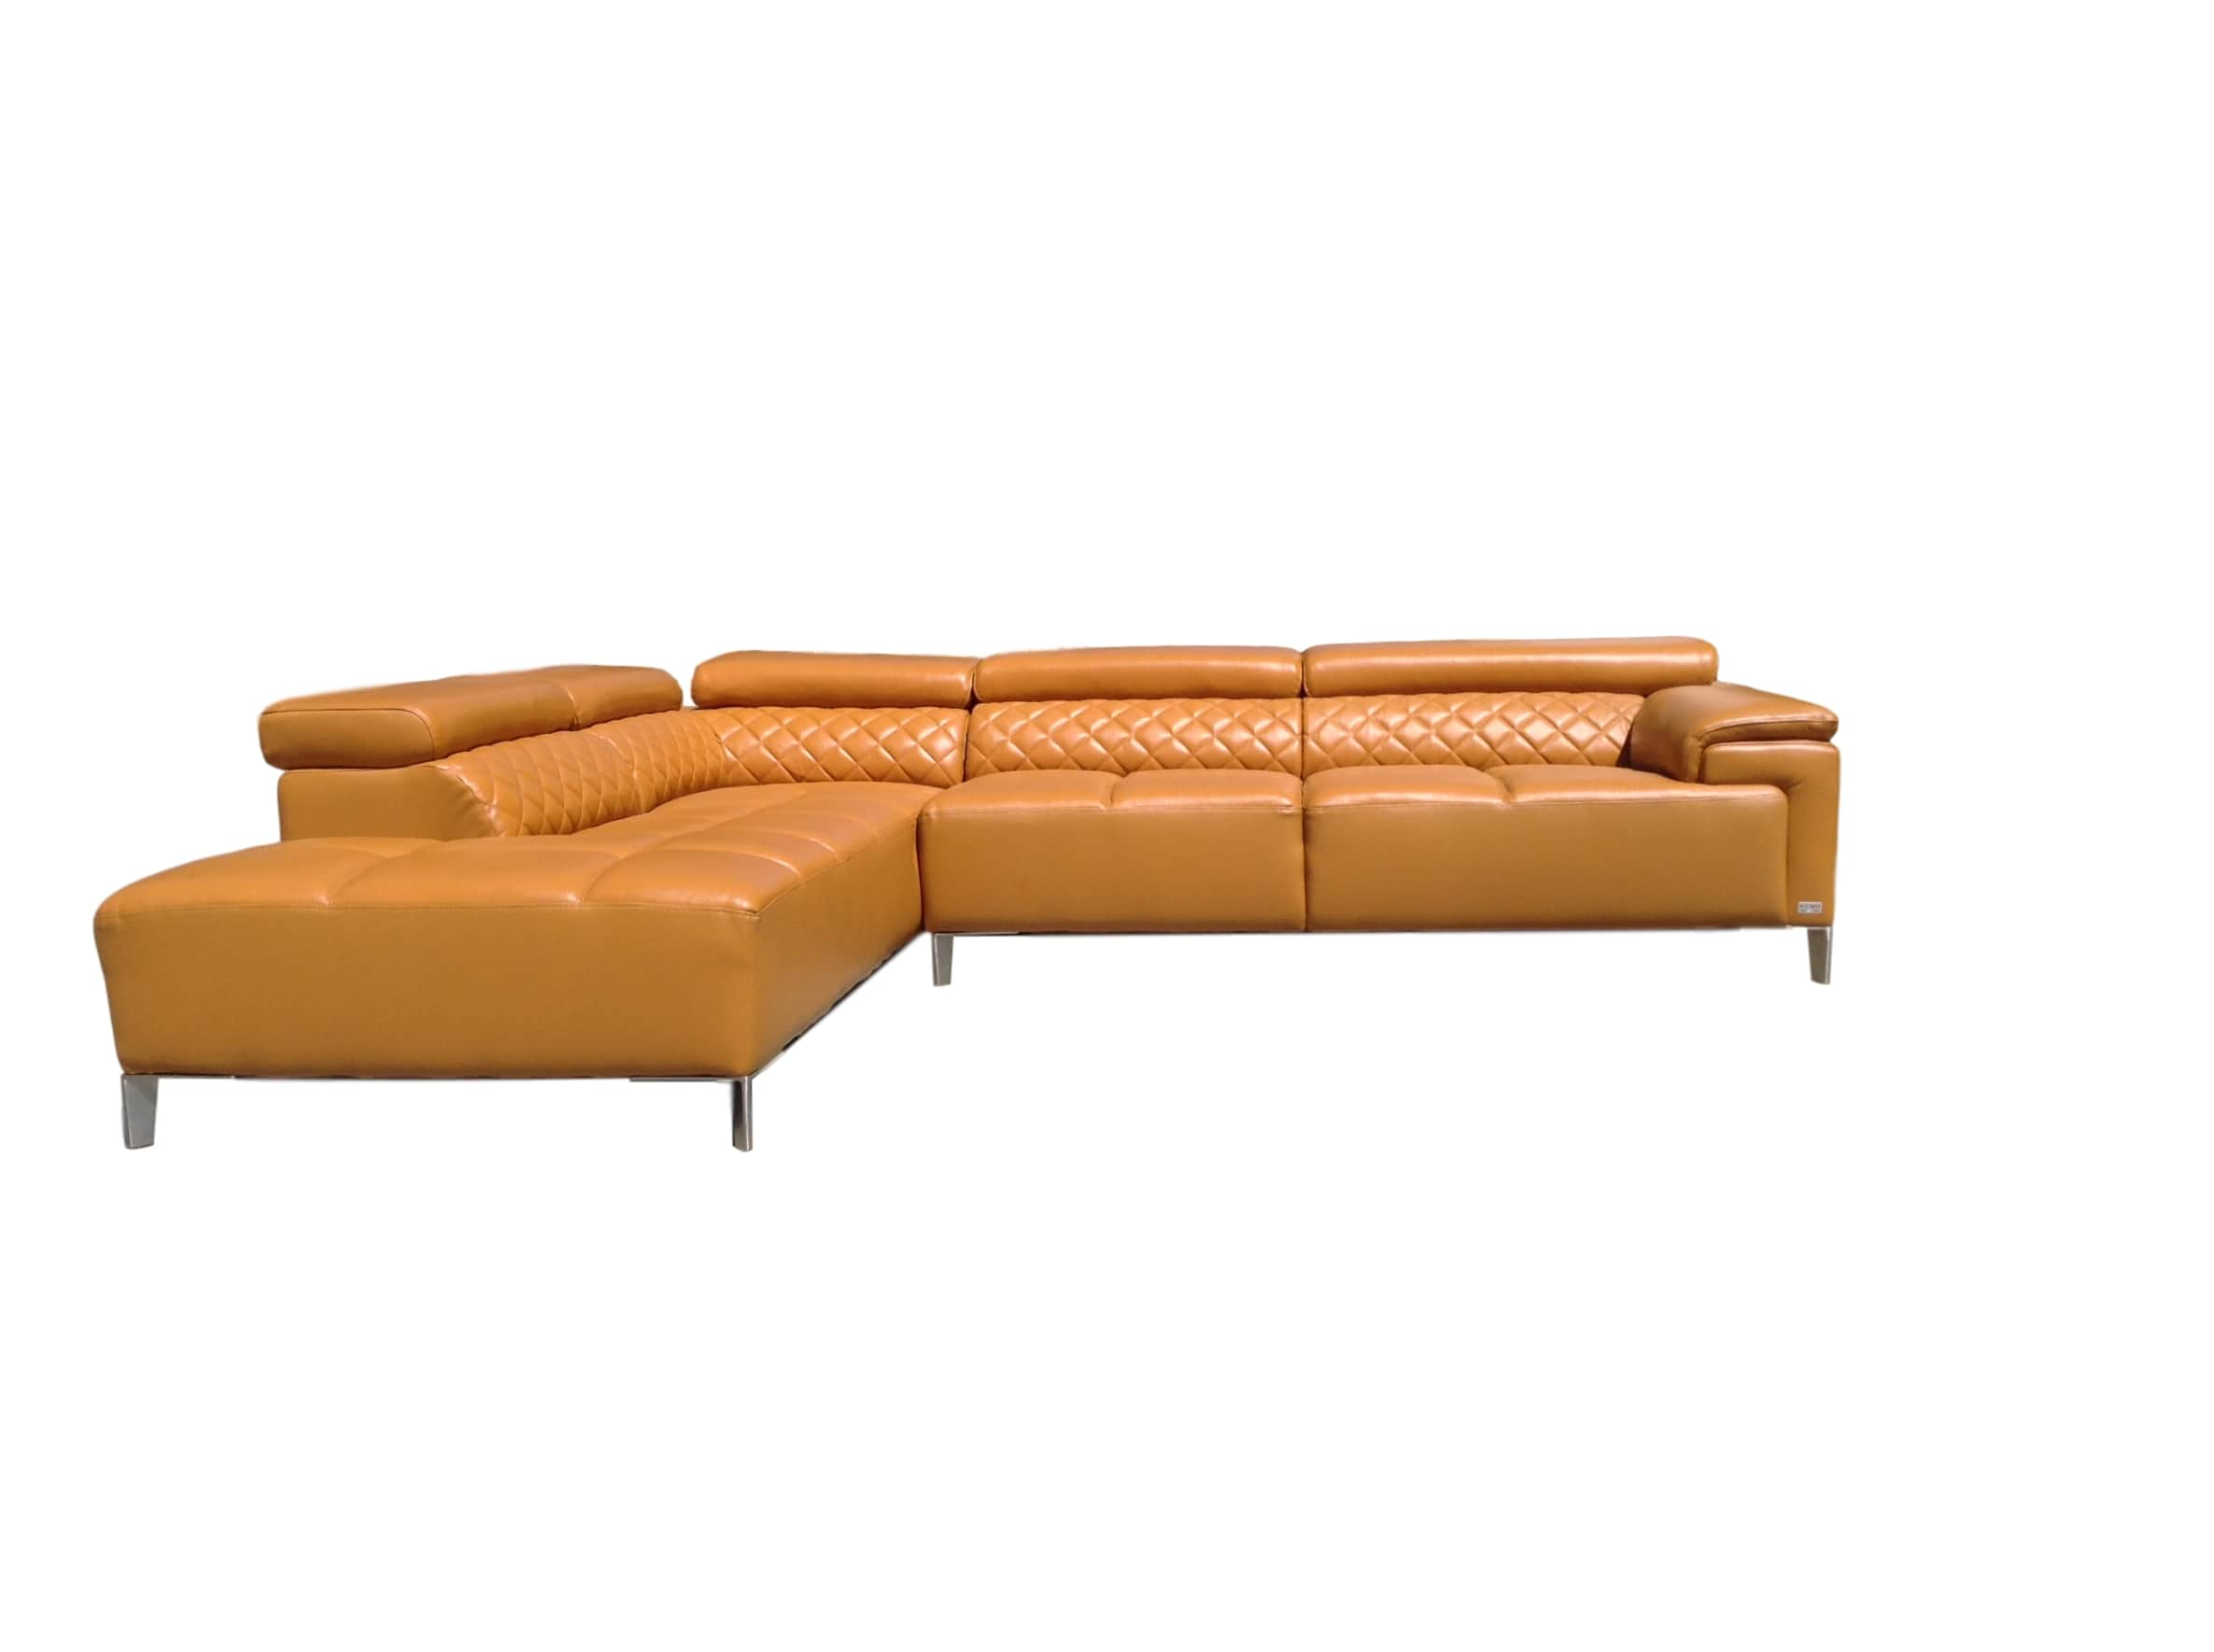 Citadel Modern Orange Italian Leather Sectional Sofa *Reduced*